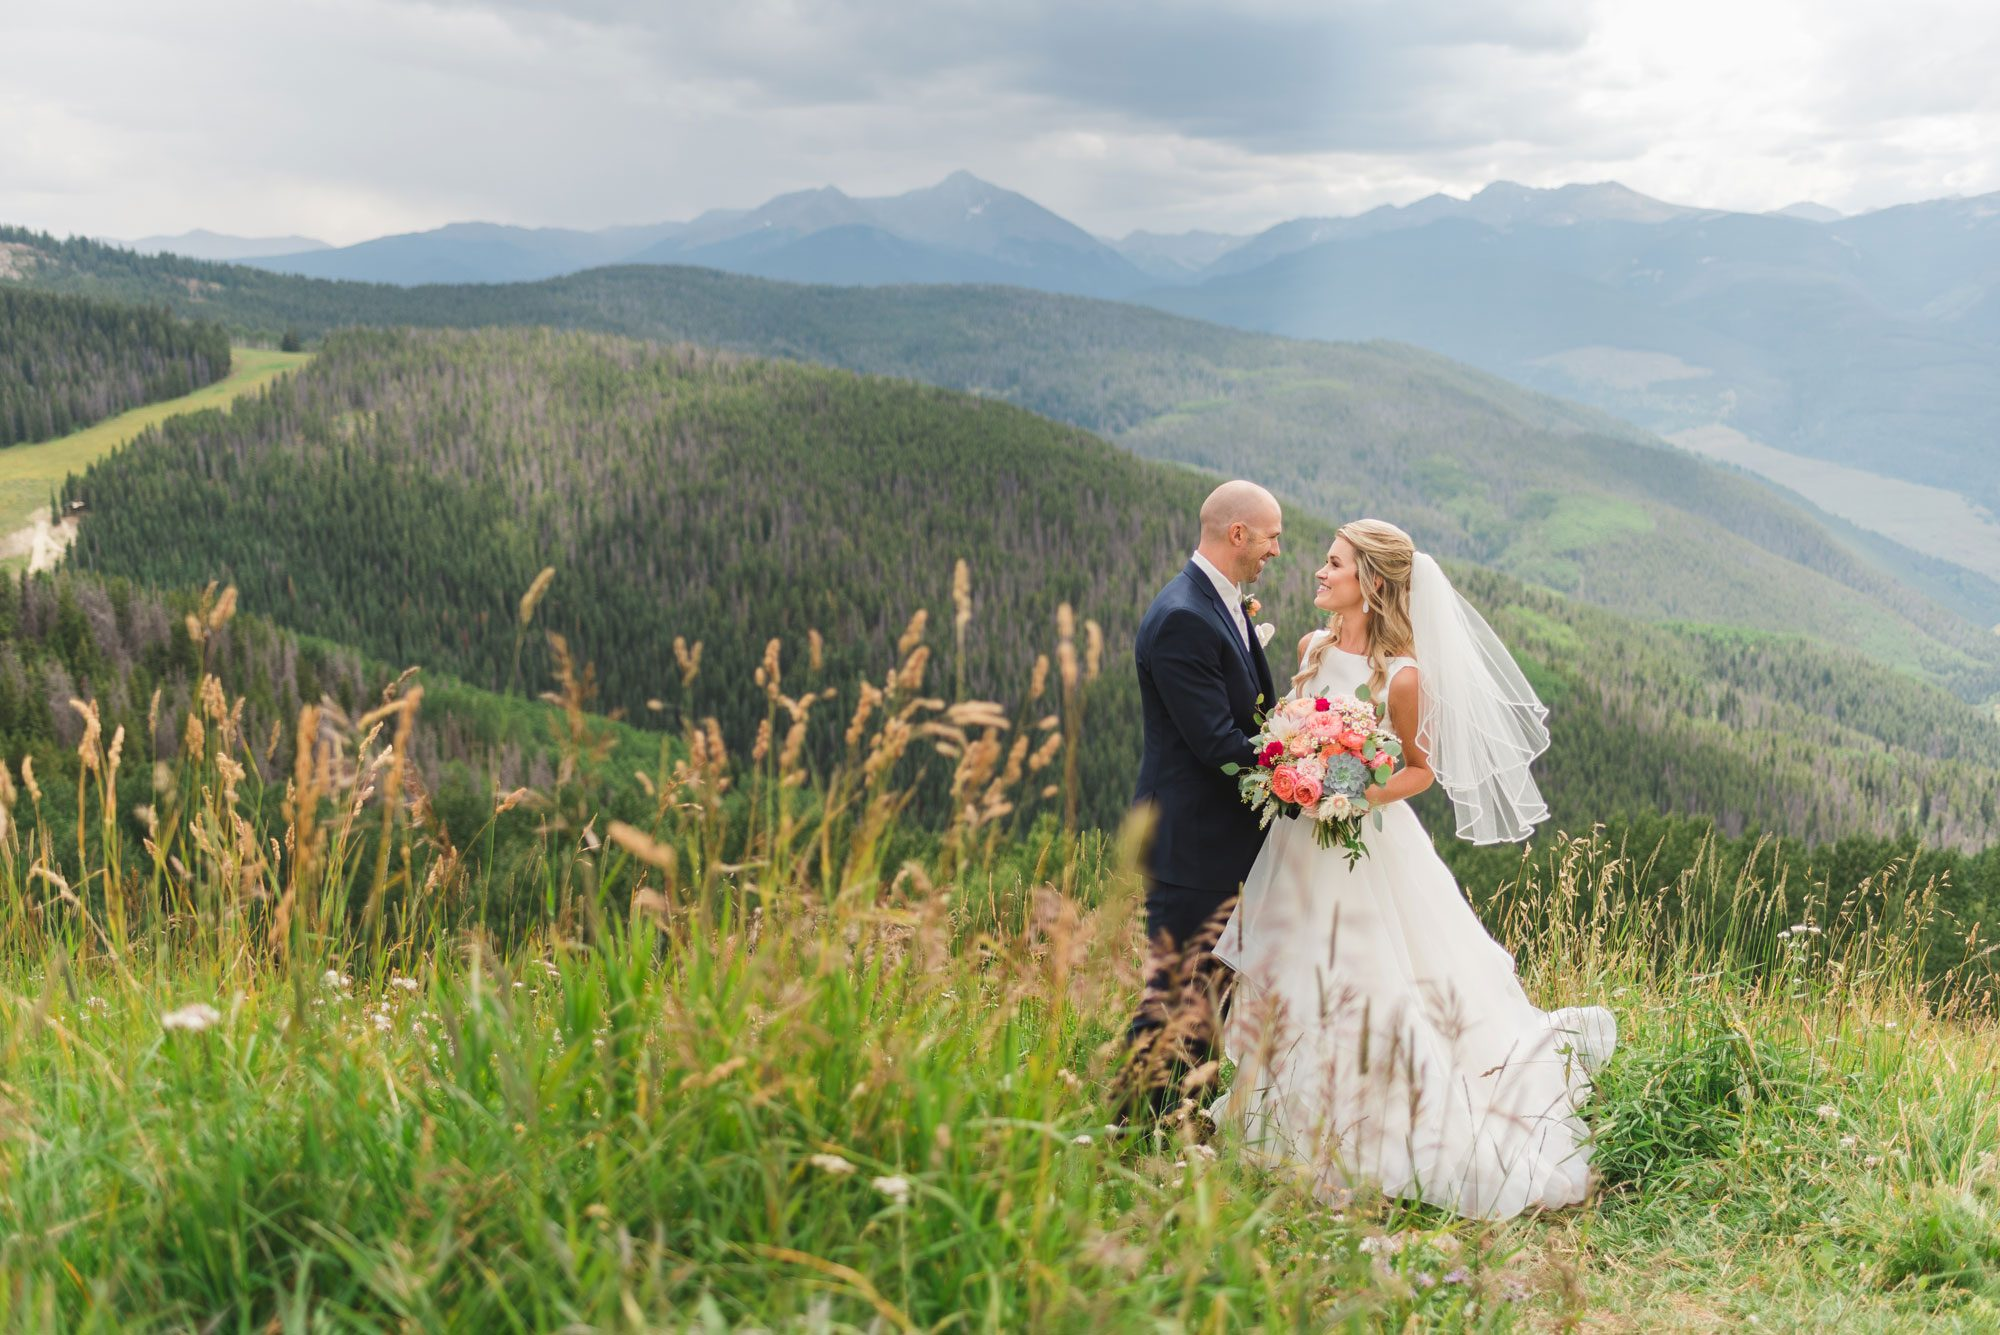 A Mountain Destination Wedding in Vail